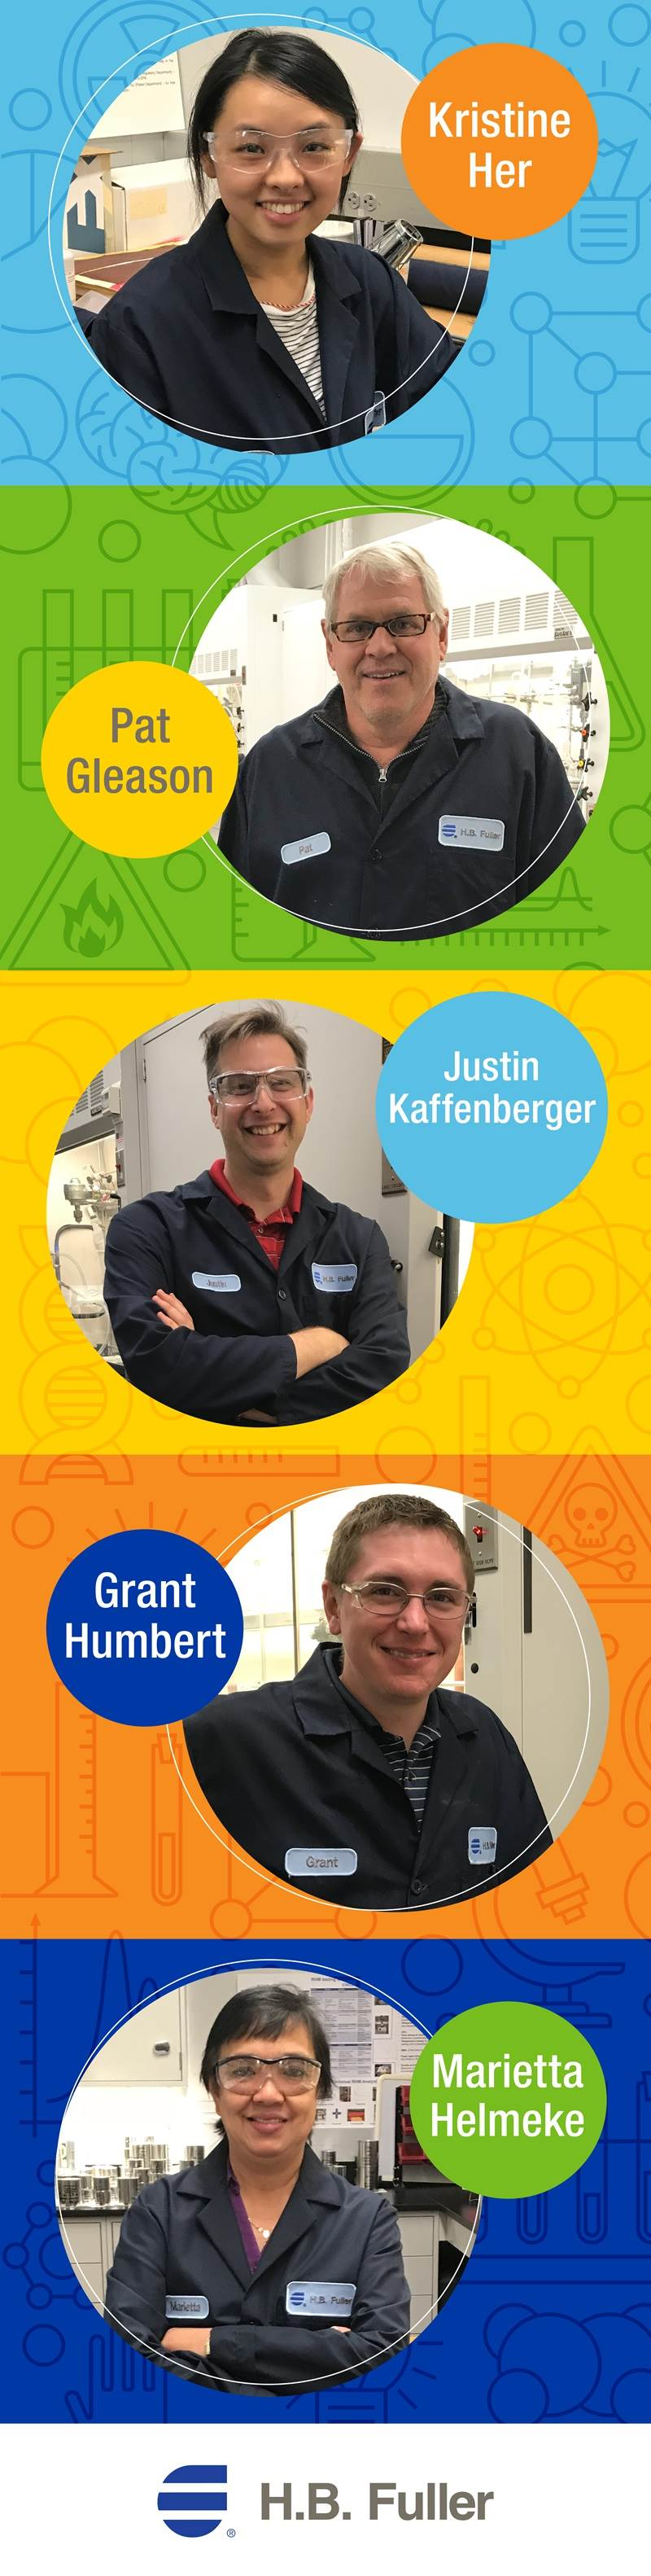 H.B. Fuller is excited to spotlight some extraordinary chemists for National Chemistry Week. Learn more about the difference each one of them is making.